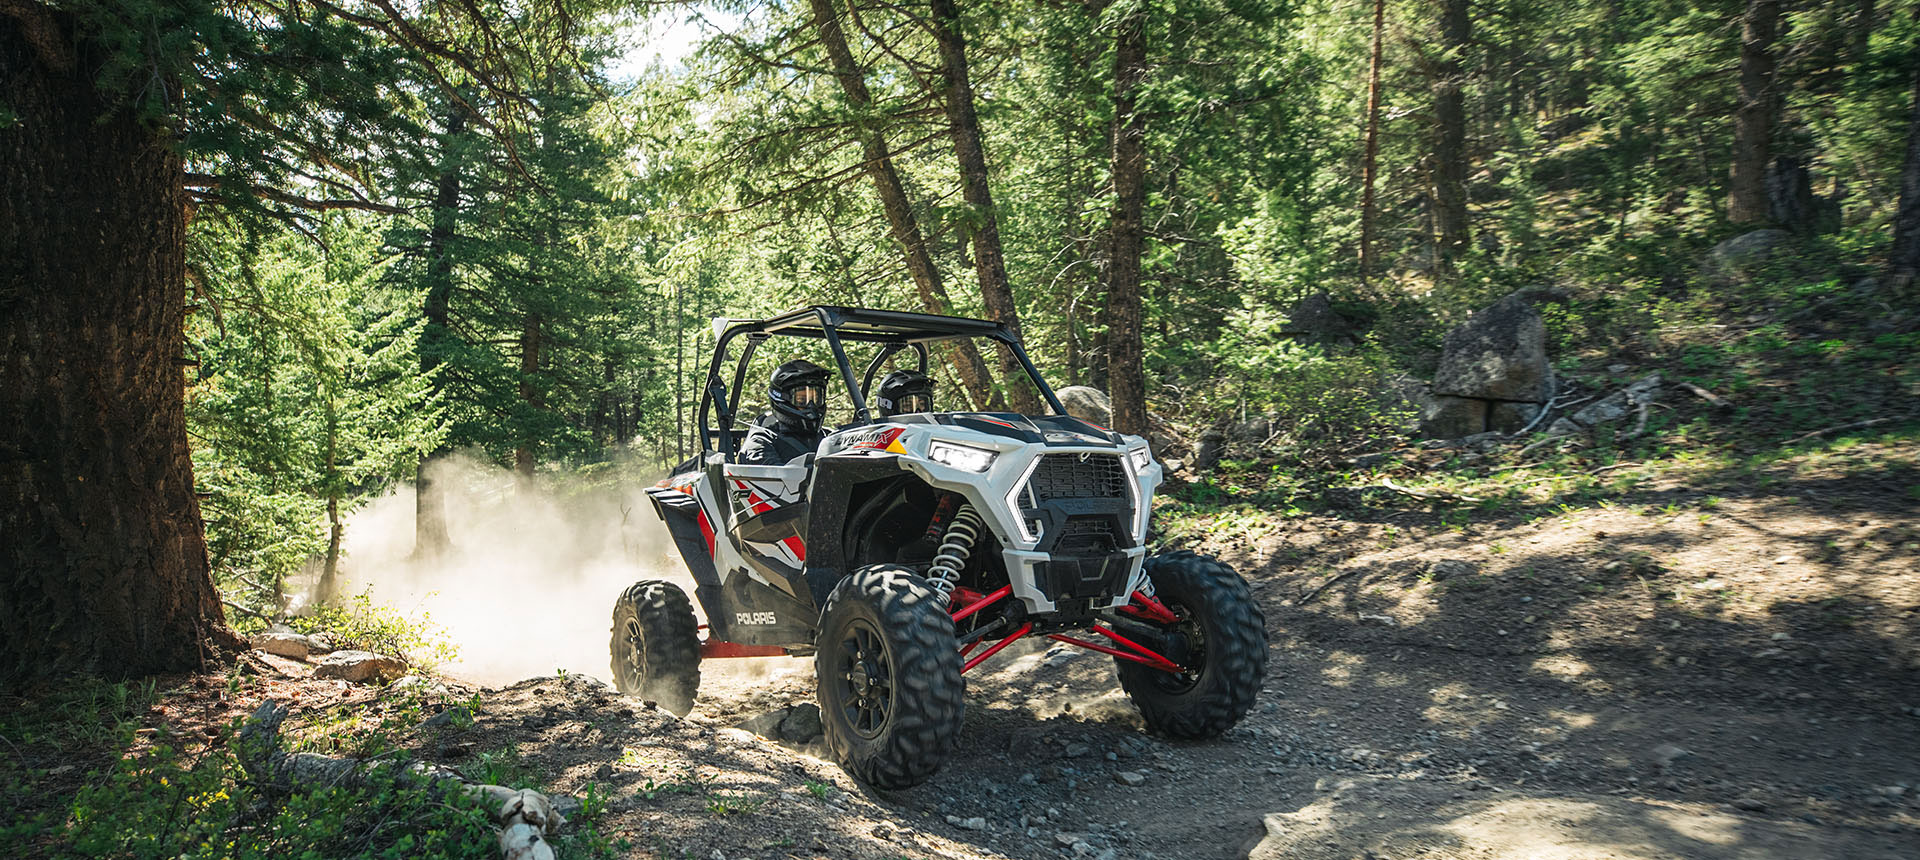 2019 Polaris RZR XP 1000 in Marietta, Ohio - Photo 9